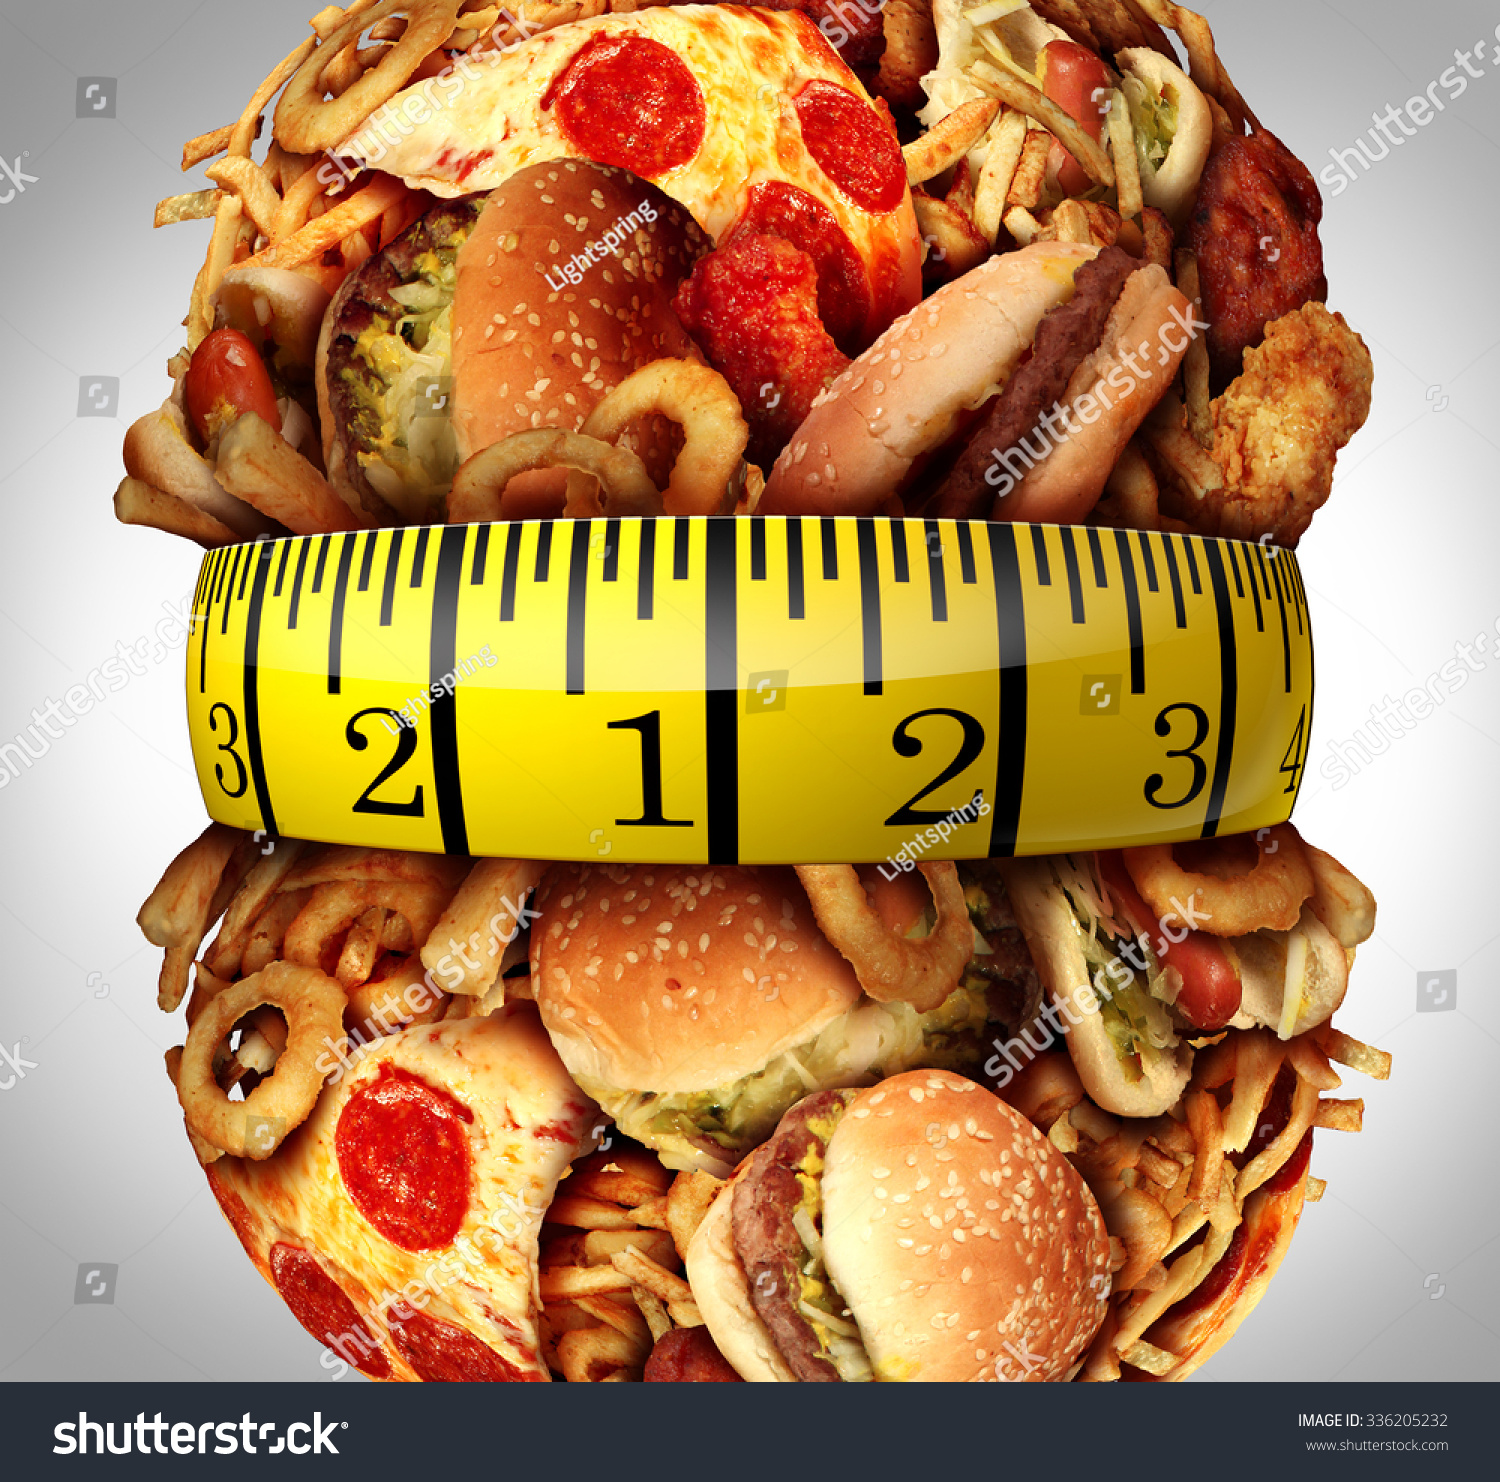 Obesity Or Fast Food And Disease And Children